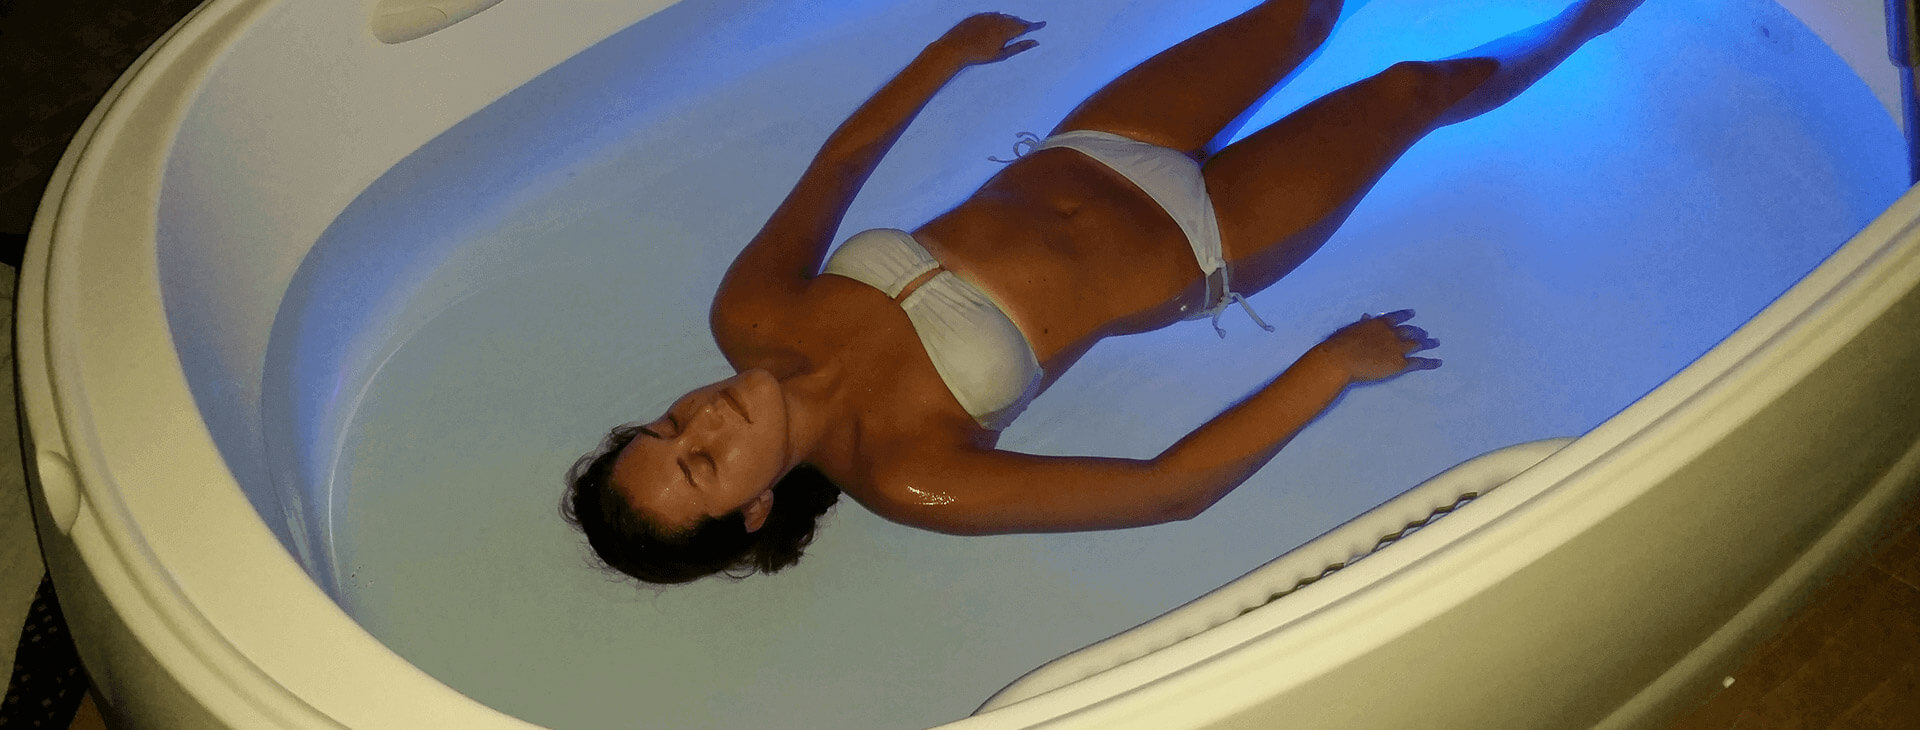 RELAX YOUR BODY AND SOUL WITH